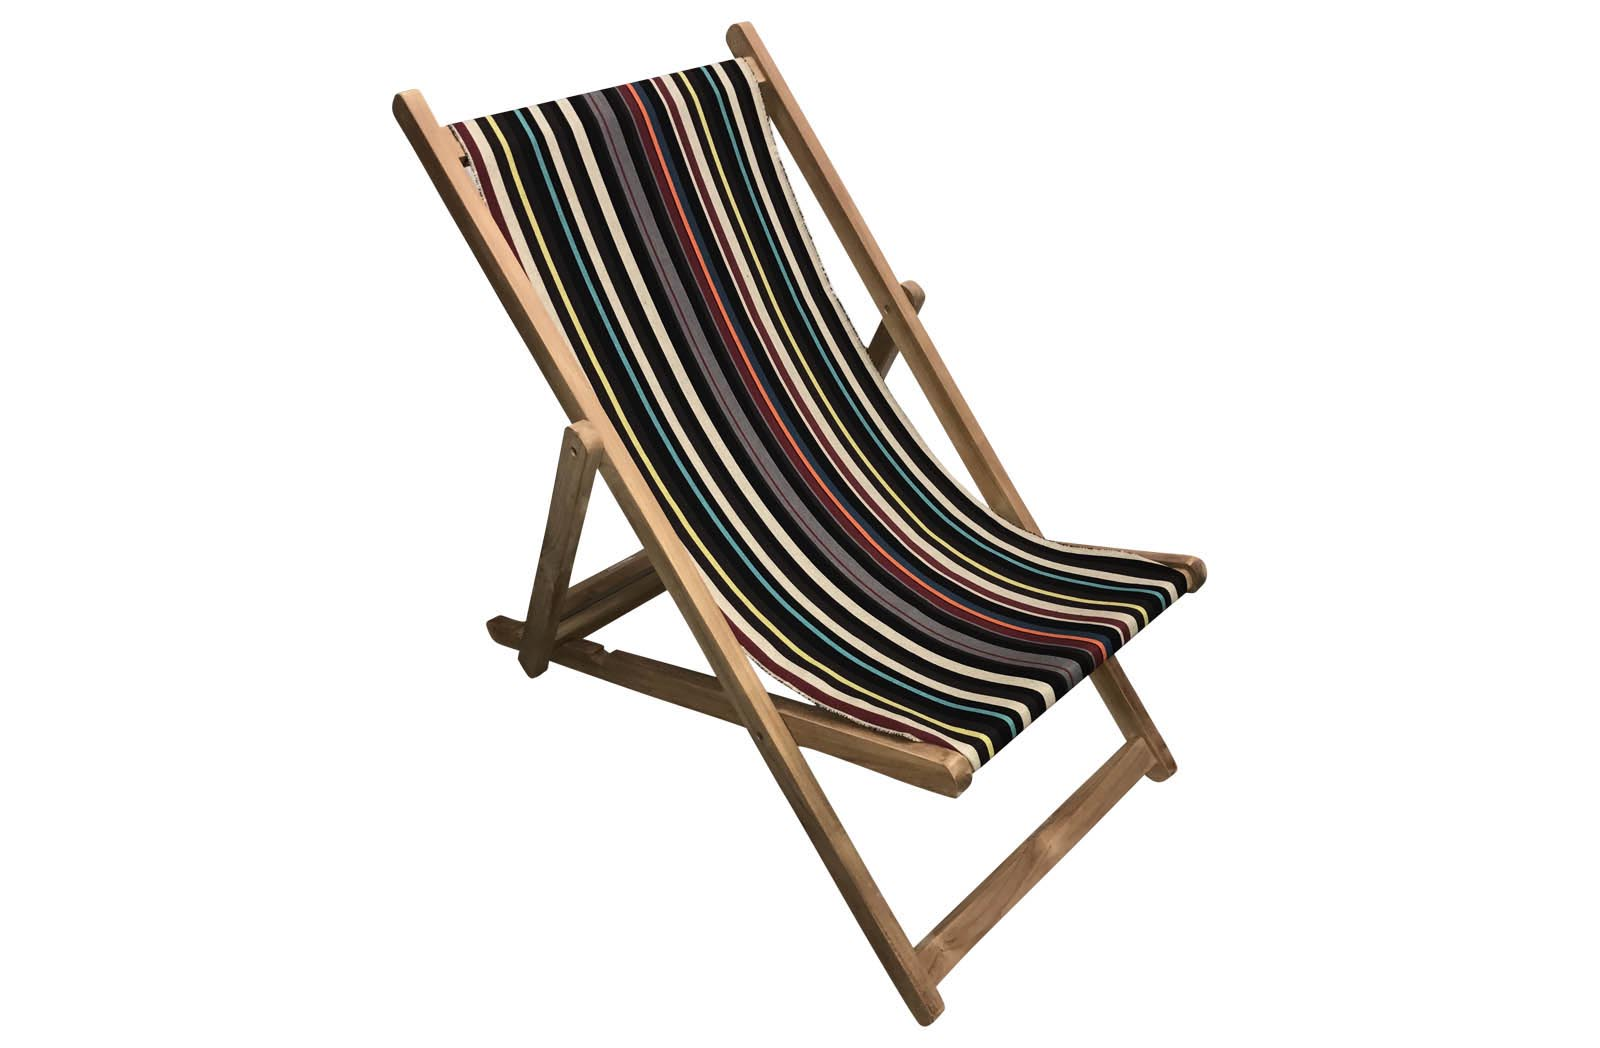 Black Deckchairs | Wooden Deck Chairs with Black Striped Deckchair Sling - Shooting Stripe